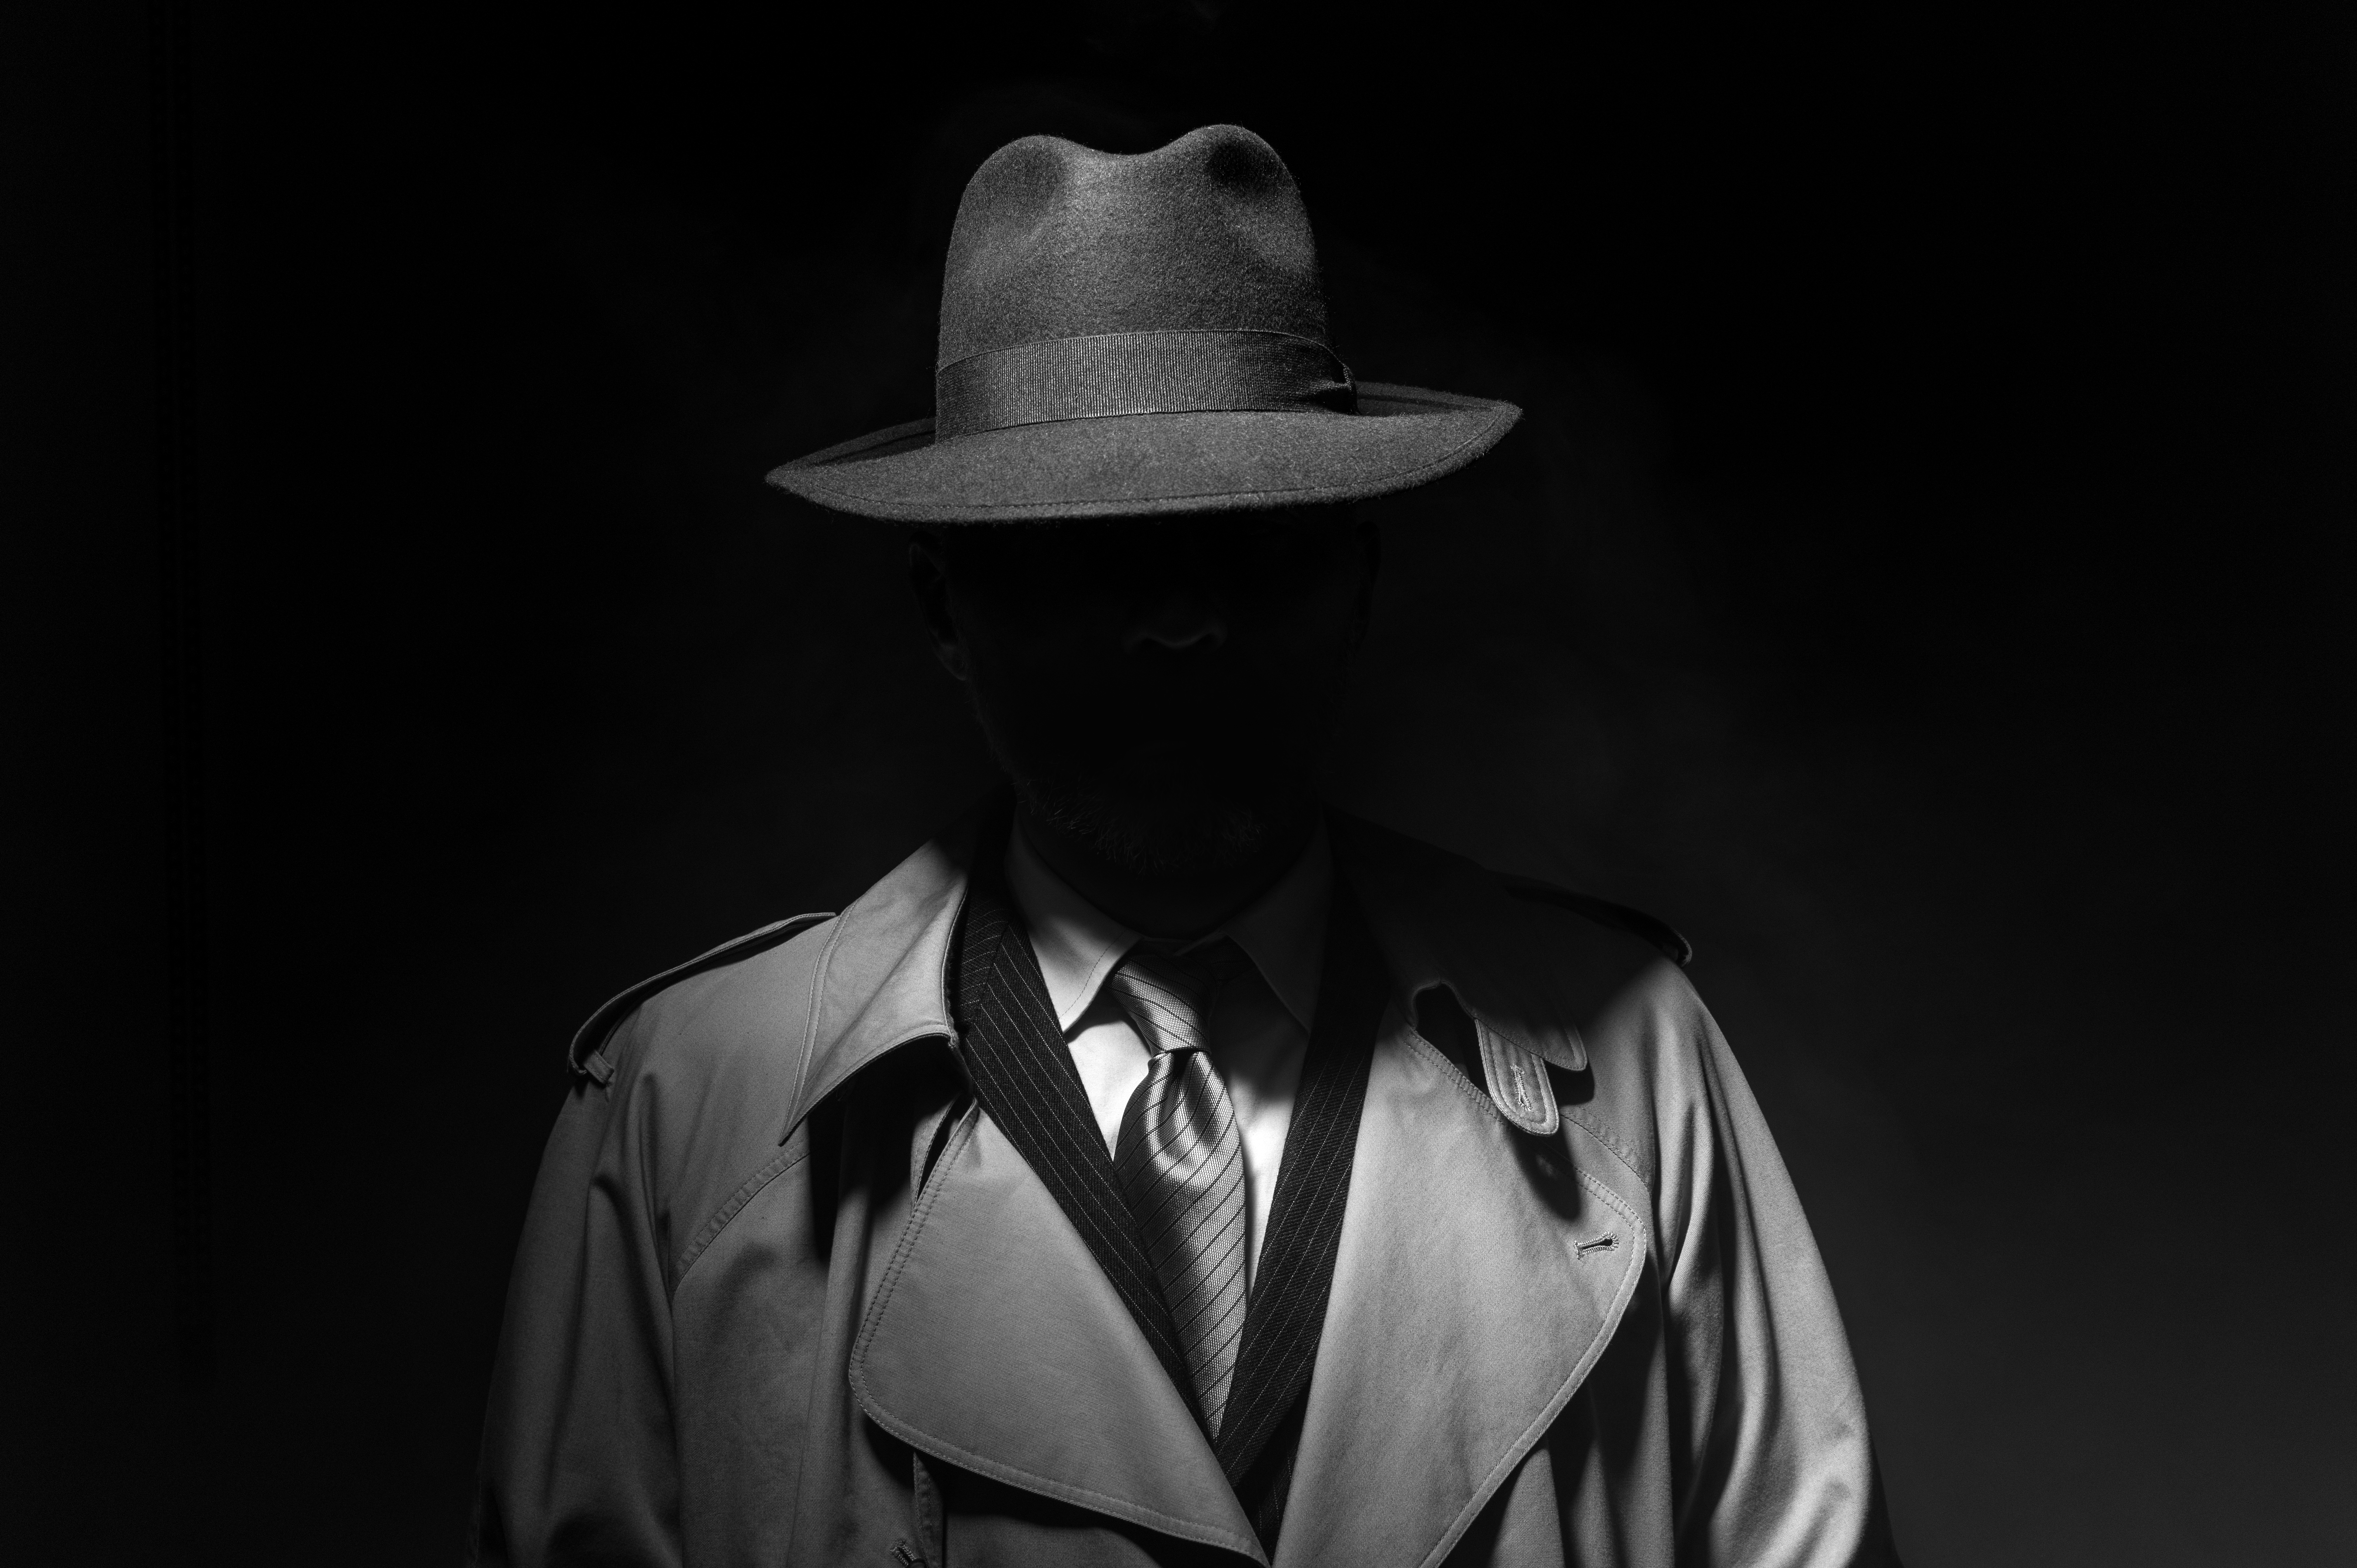 obituary for mystery man in the shadows